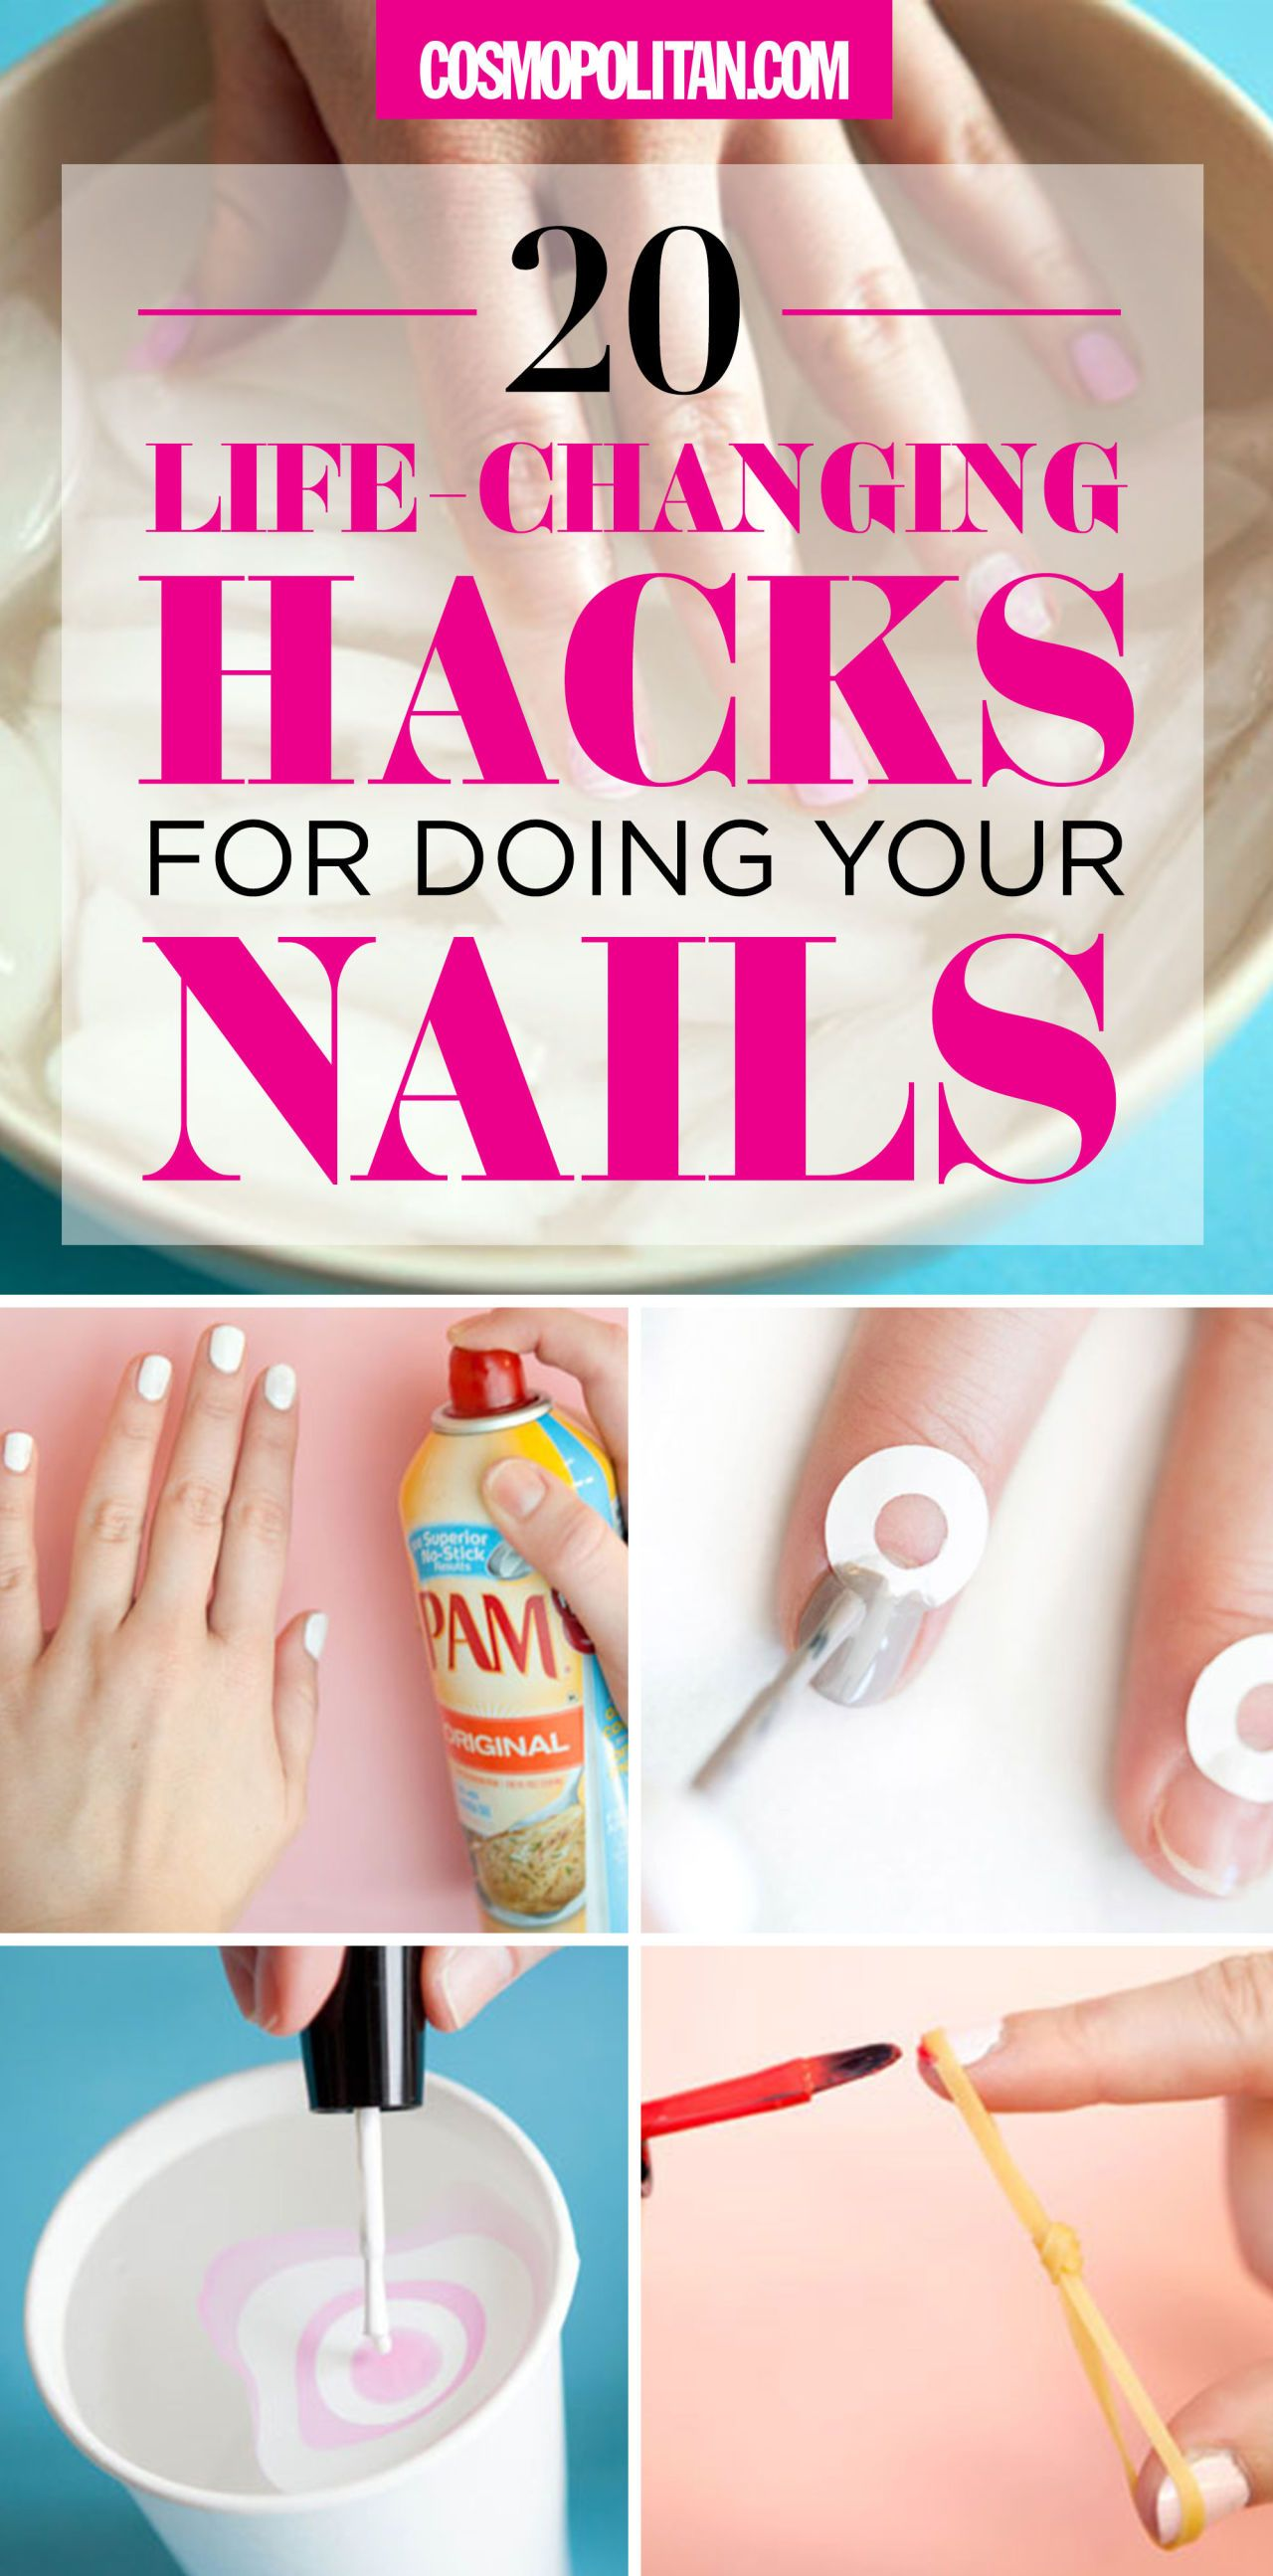 how to kill yourself with nail polish remover